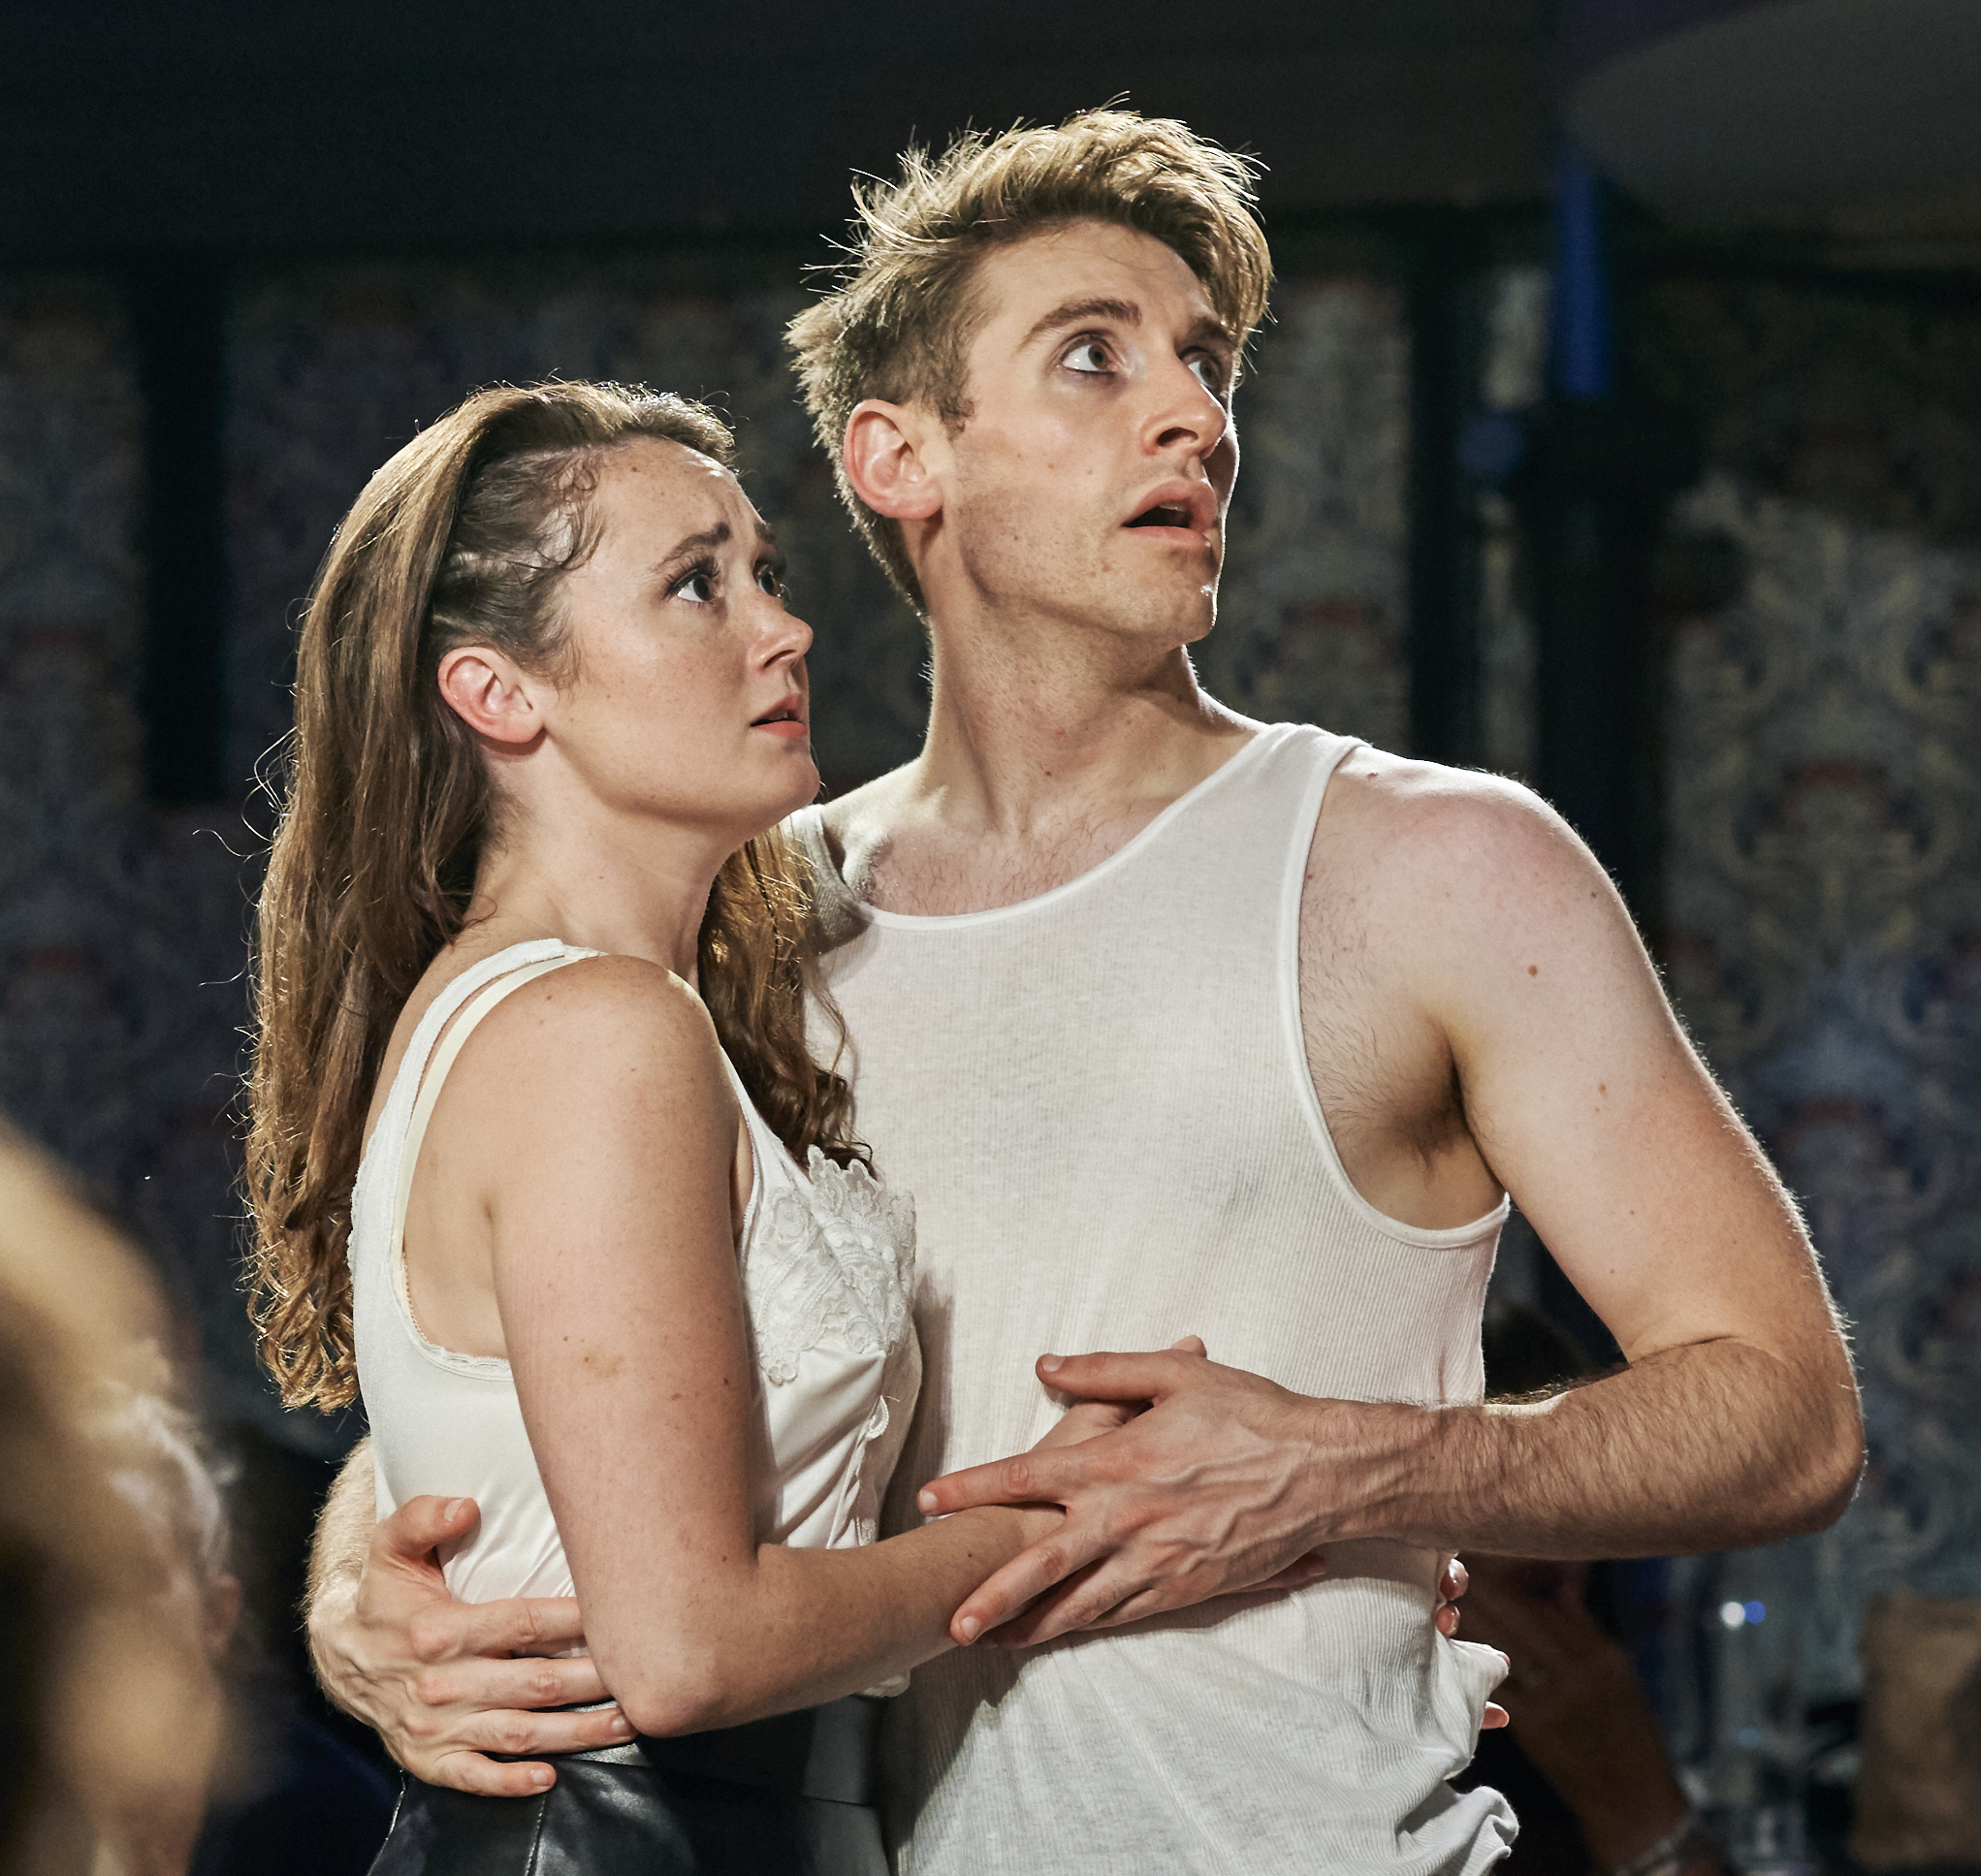 Amos as Hermia, with Gould as Lysander. Photographs by Chad Batka.